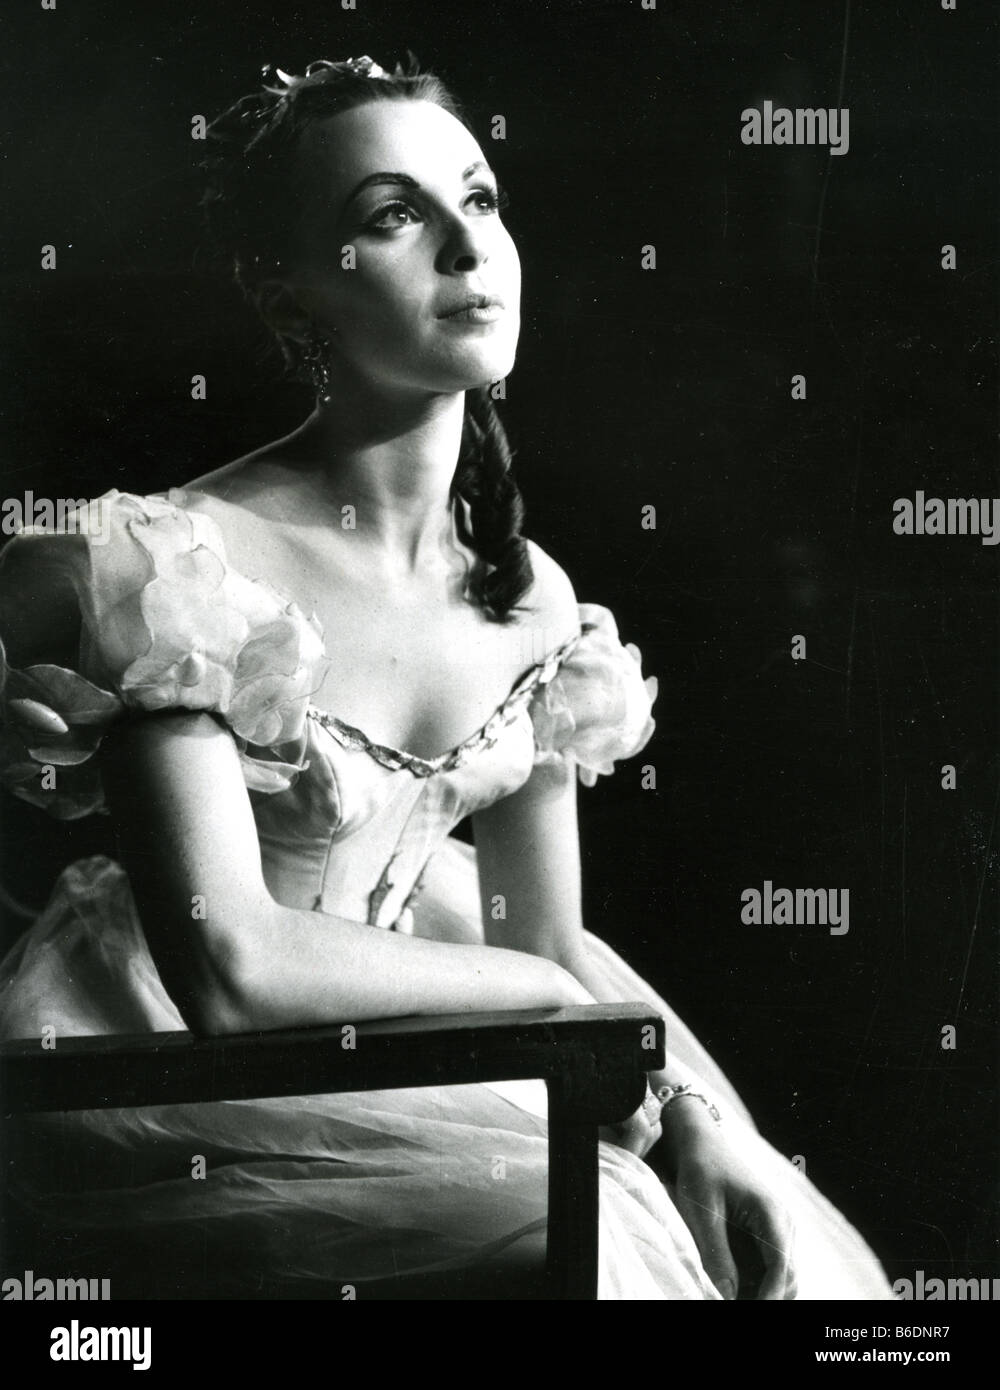 CLAIRE BLOOM as Ophelia in 1948 - Stock Image